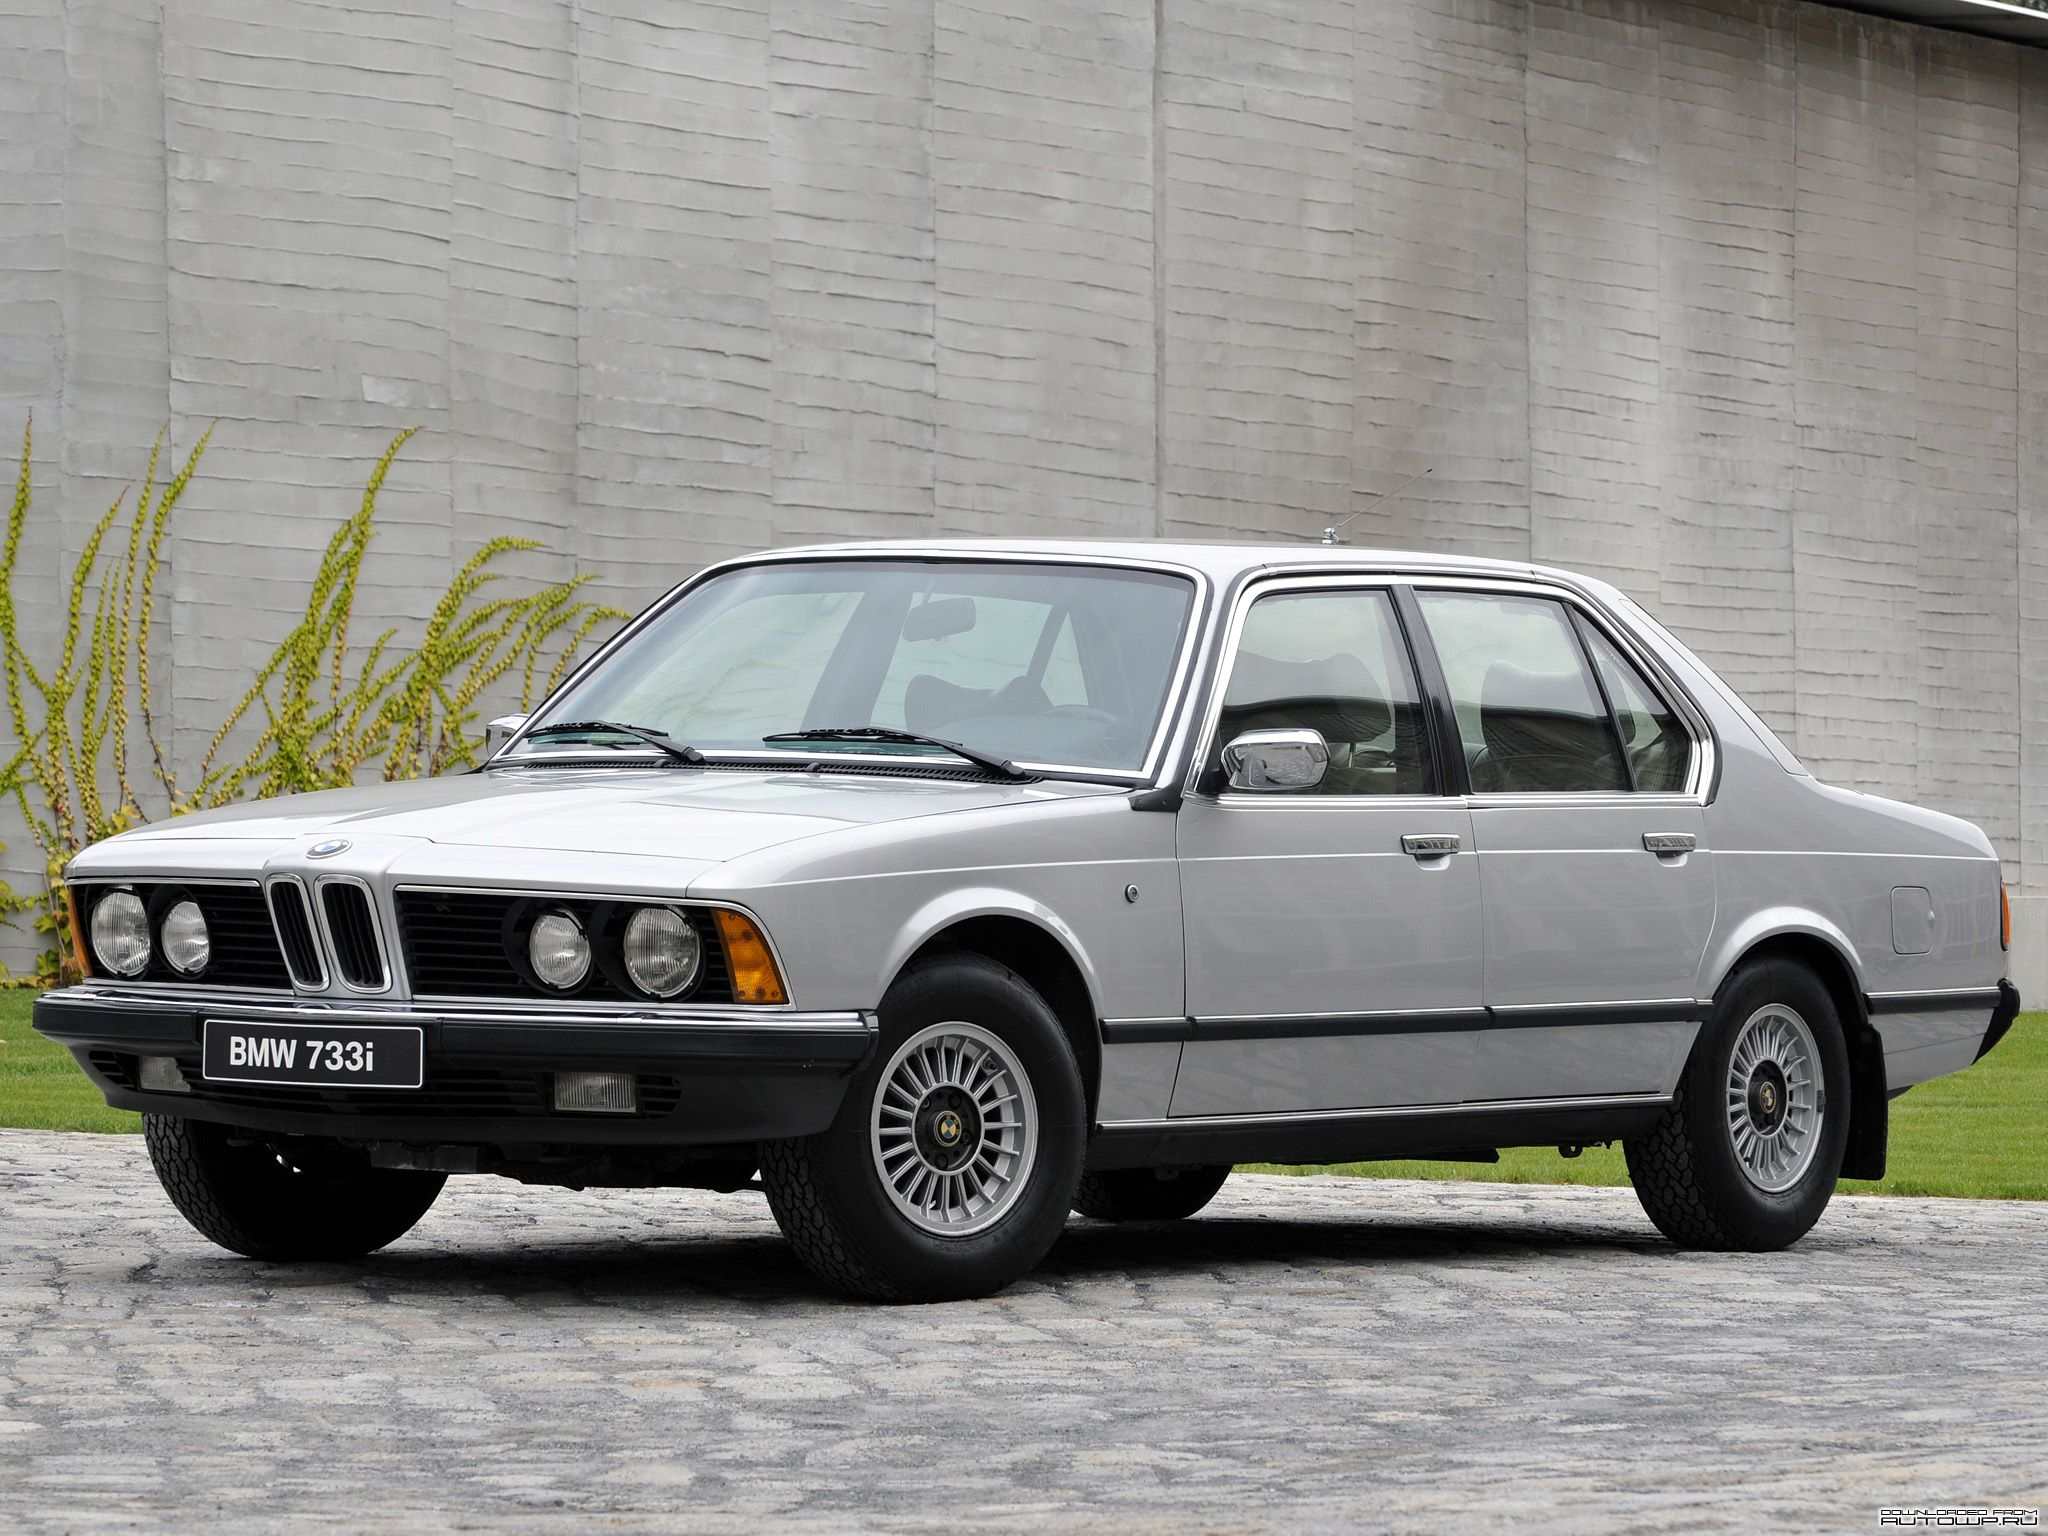 BMW 7 Series E23 | Cars | Pinterest | BMW and Cars